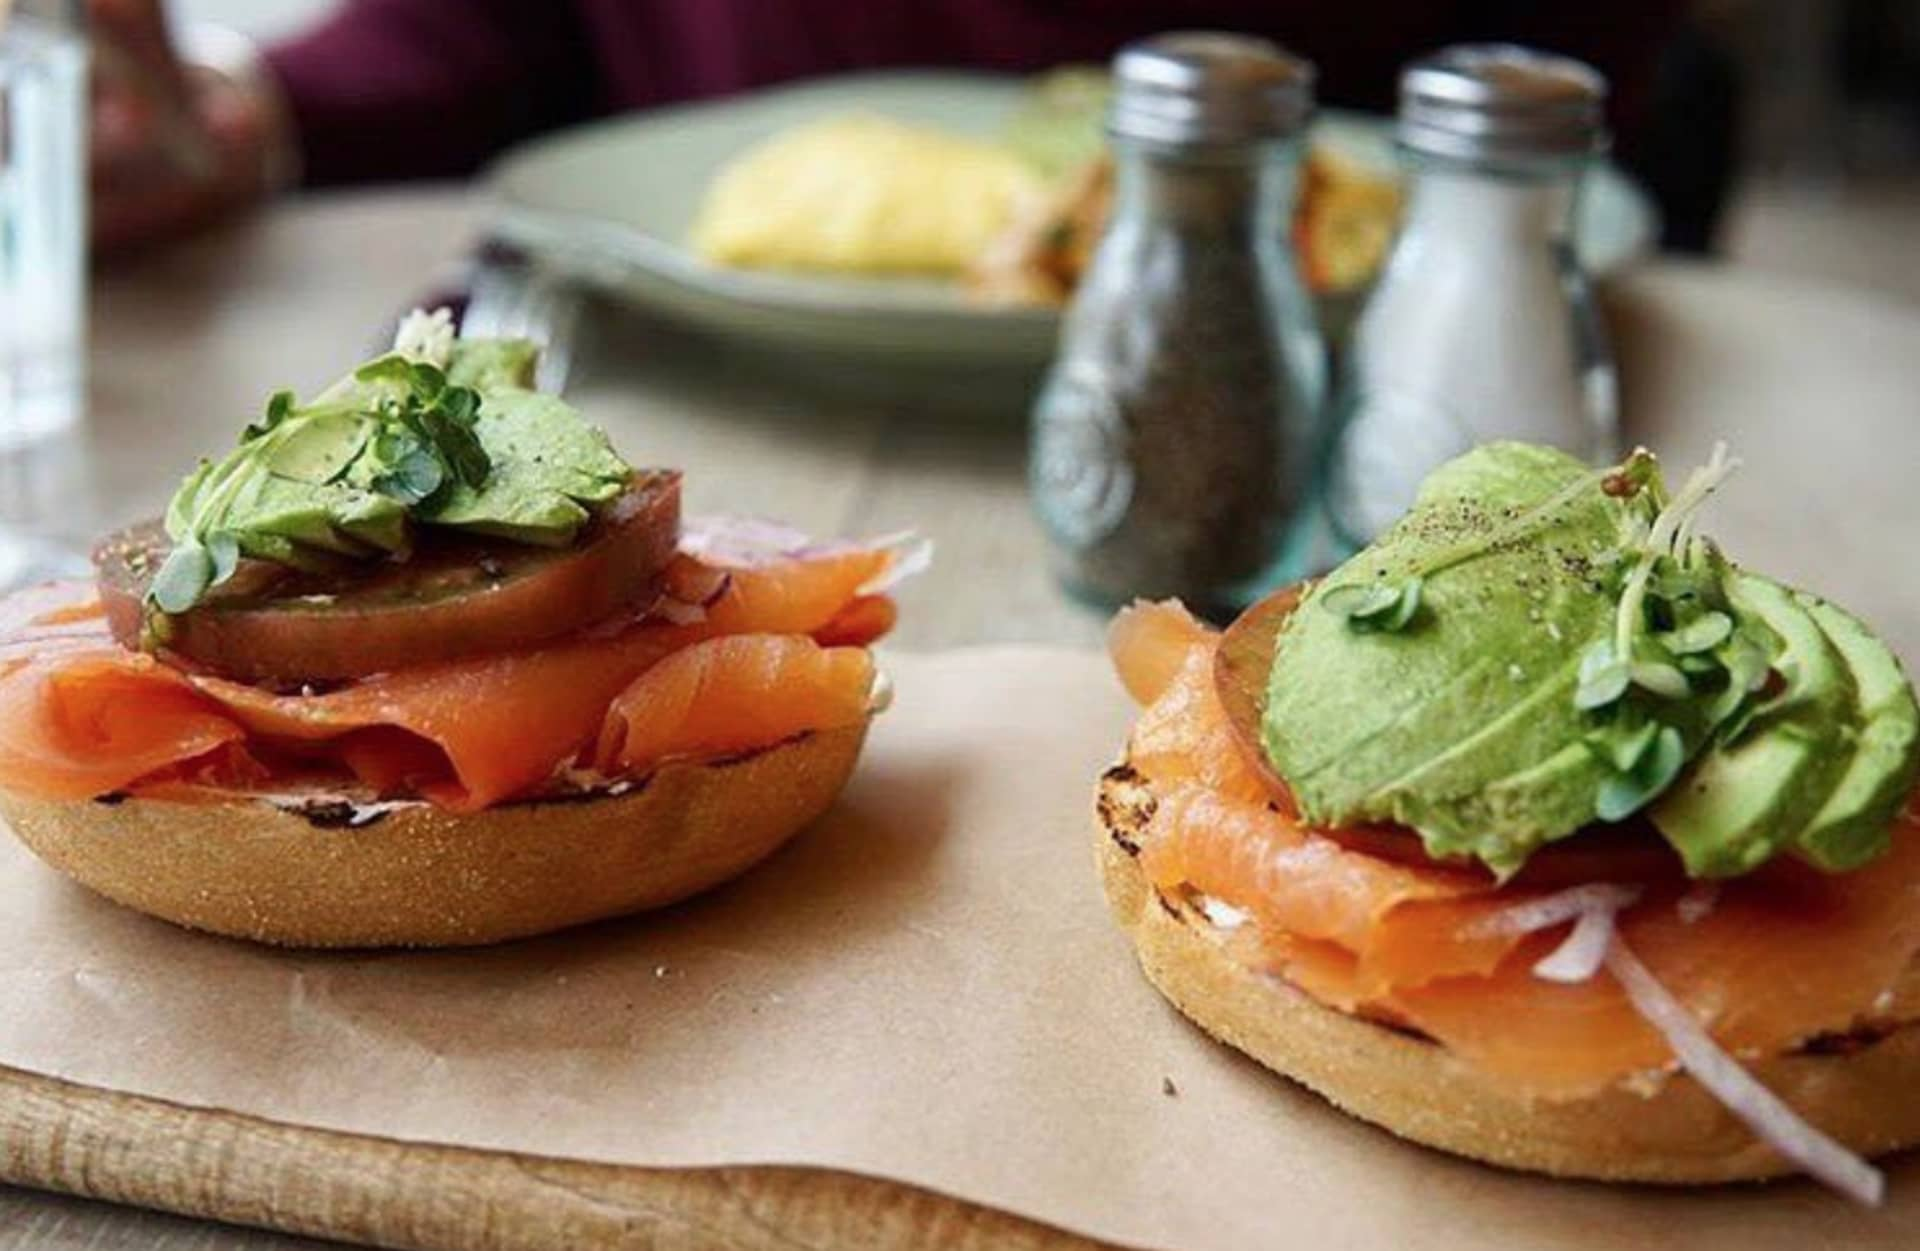 SCOTTISH SMOKED SALMON BAGEL